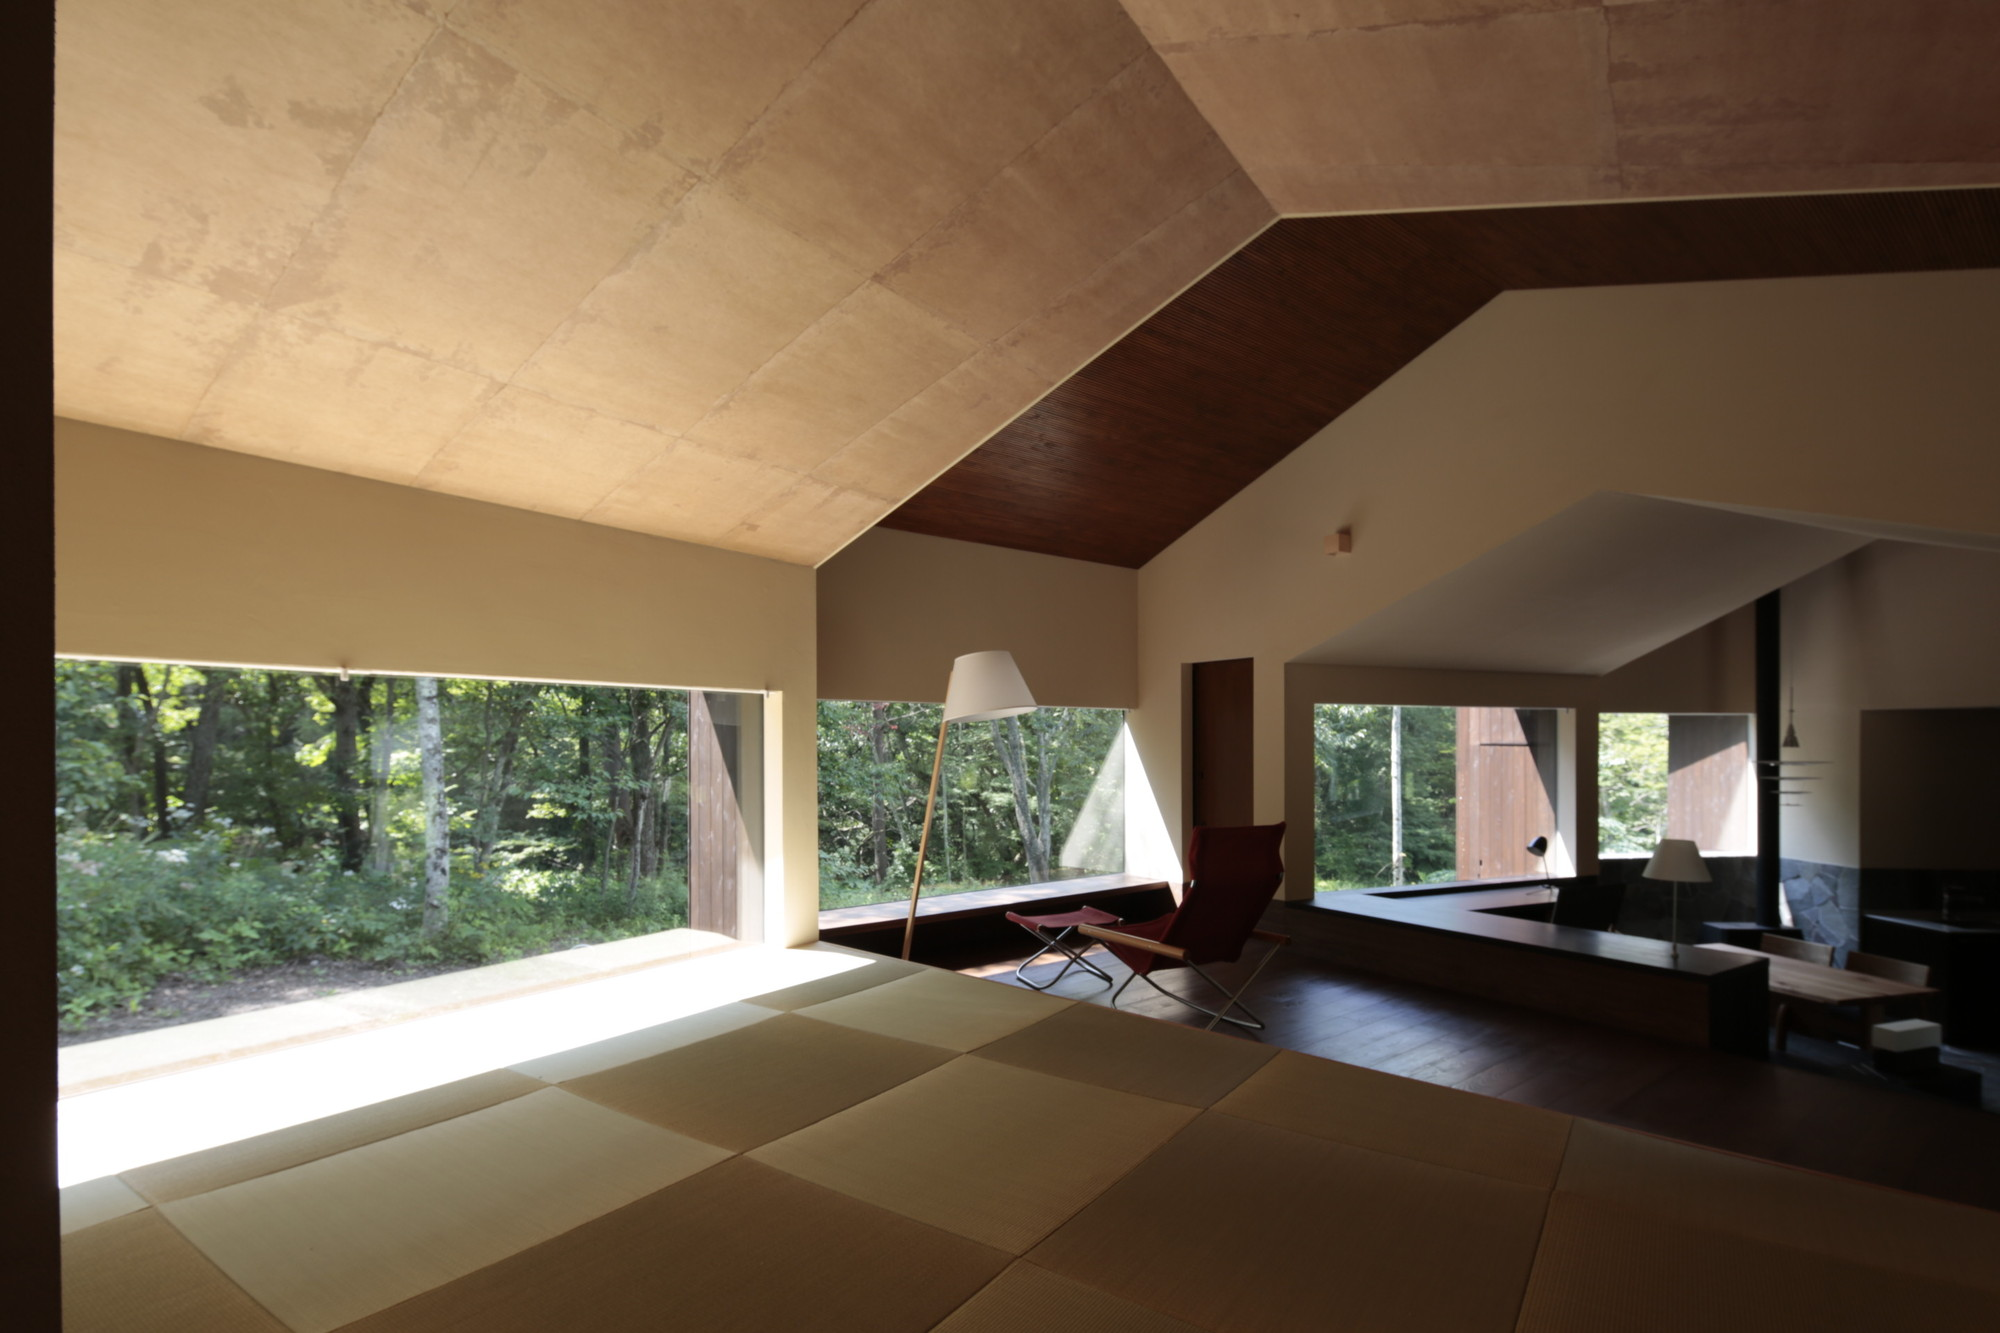 Rooms That Follow The Scenery / ON design partners